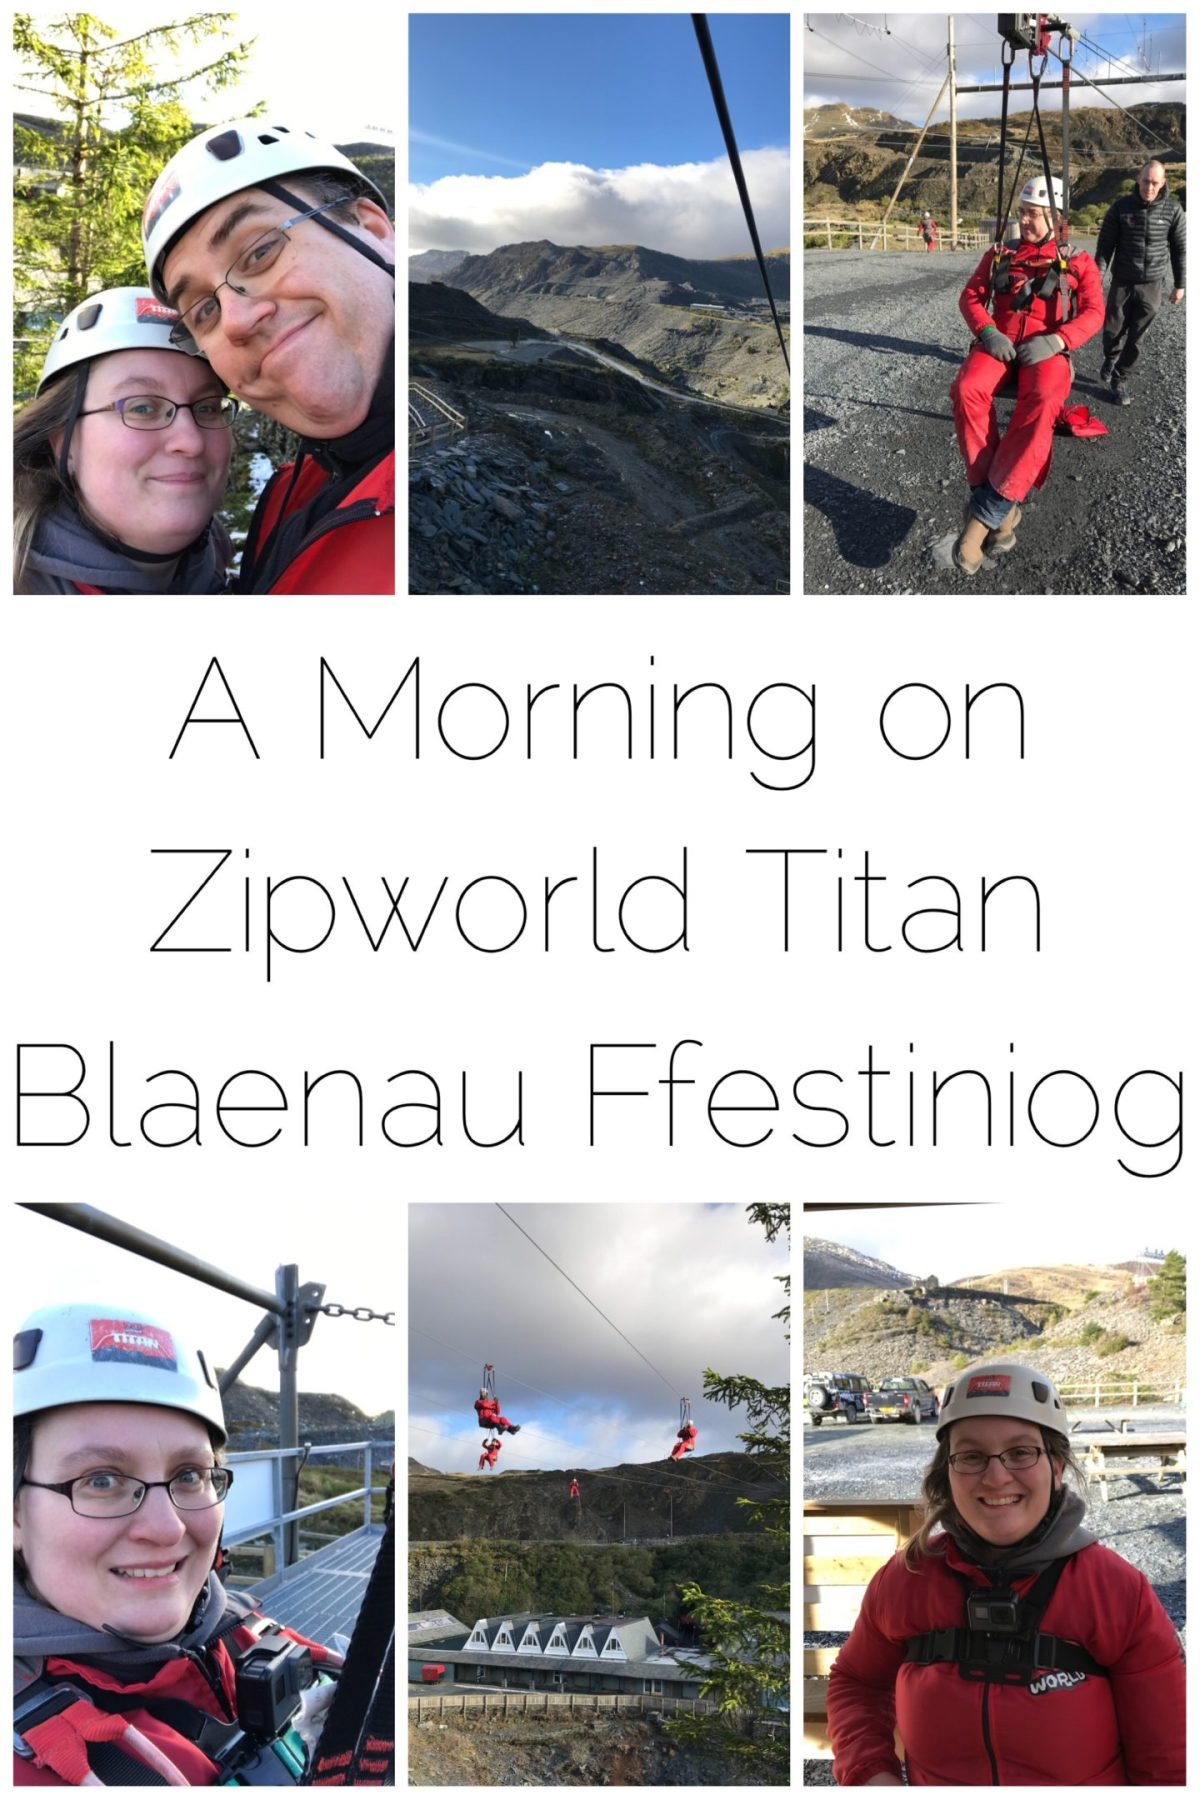 What better way to celebrate your birthday than zipping around Europ's largest zipzone? I'm so lucky to have Zipworld on my doorstep and all I can say is, Zipworld Titan is amazing!